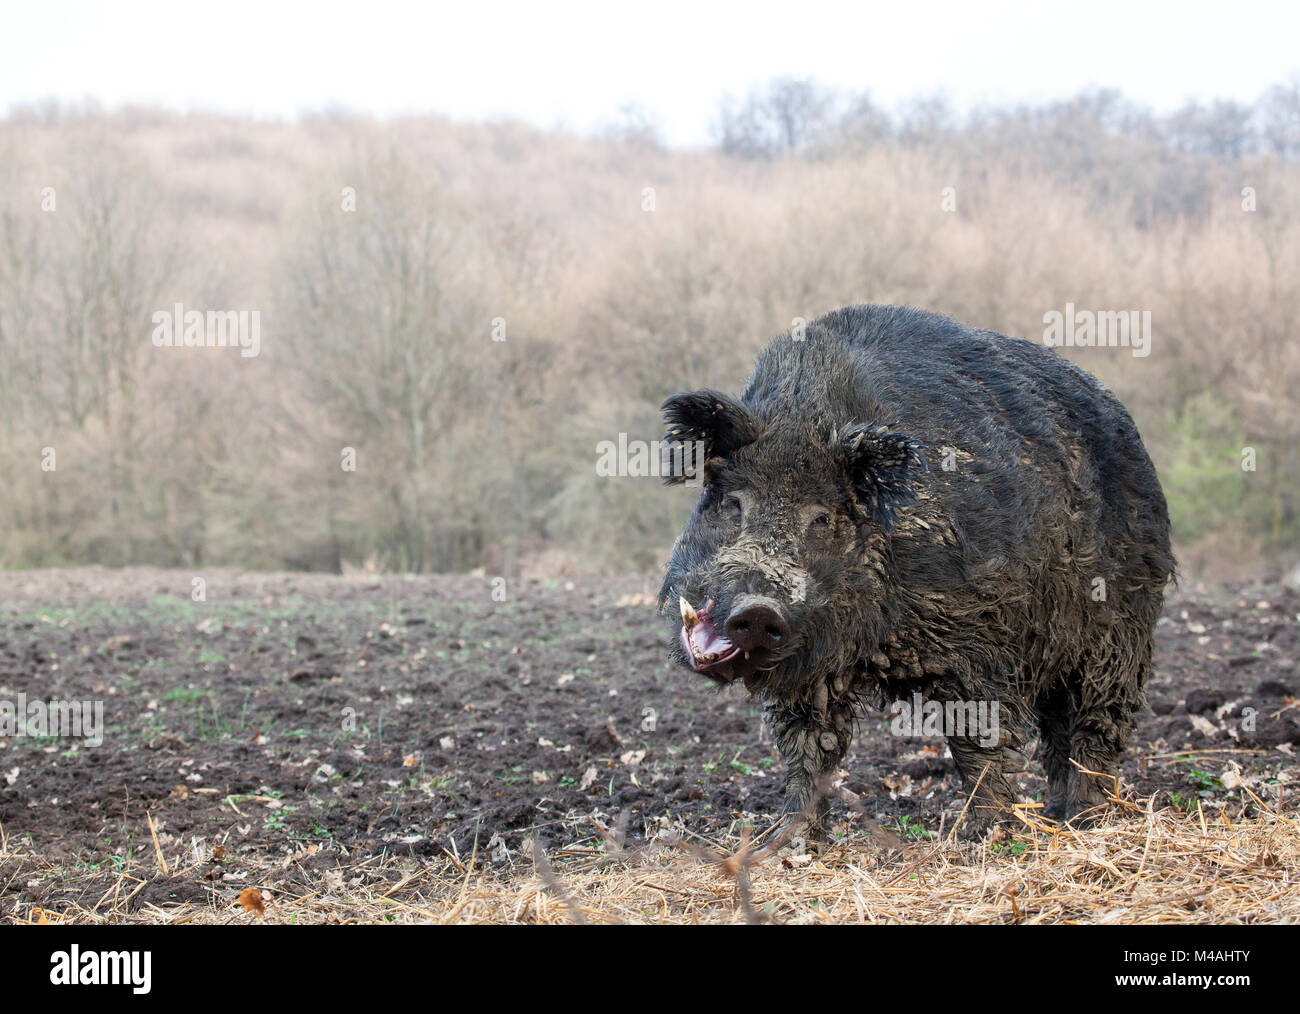 Giant Wild boar Stock Photo: 174795851 - Alamy